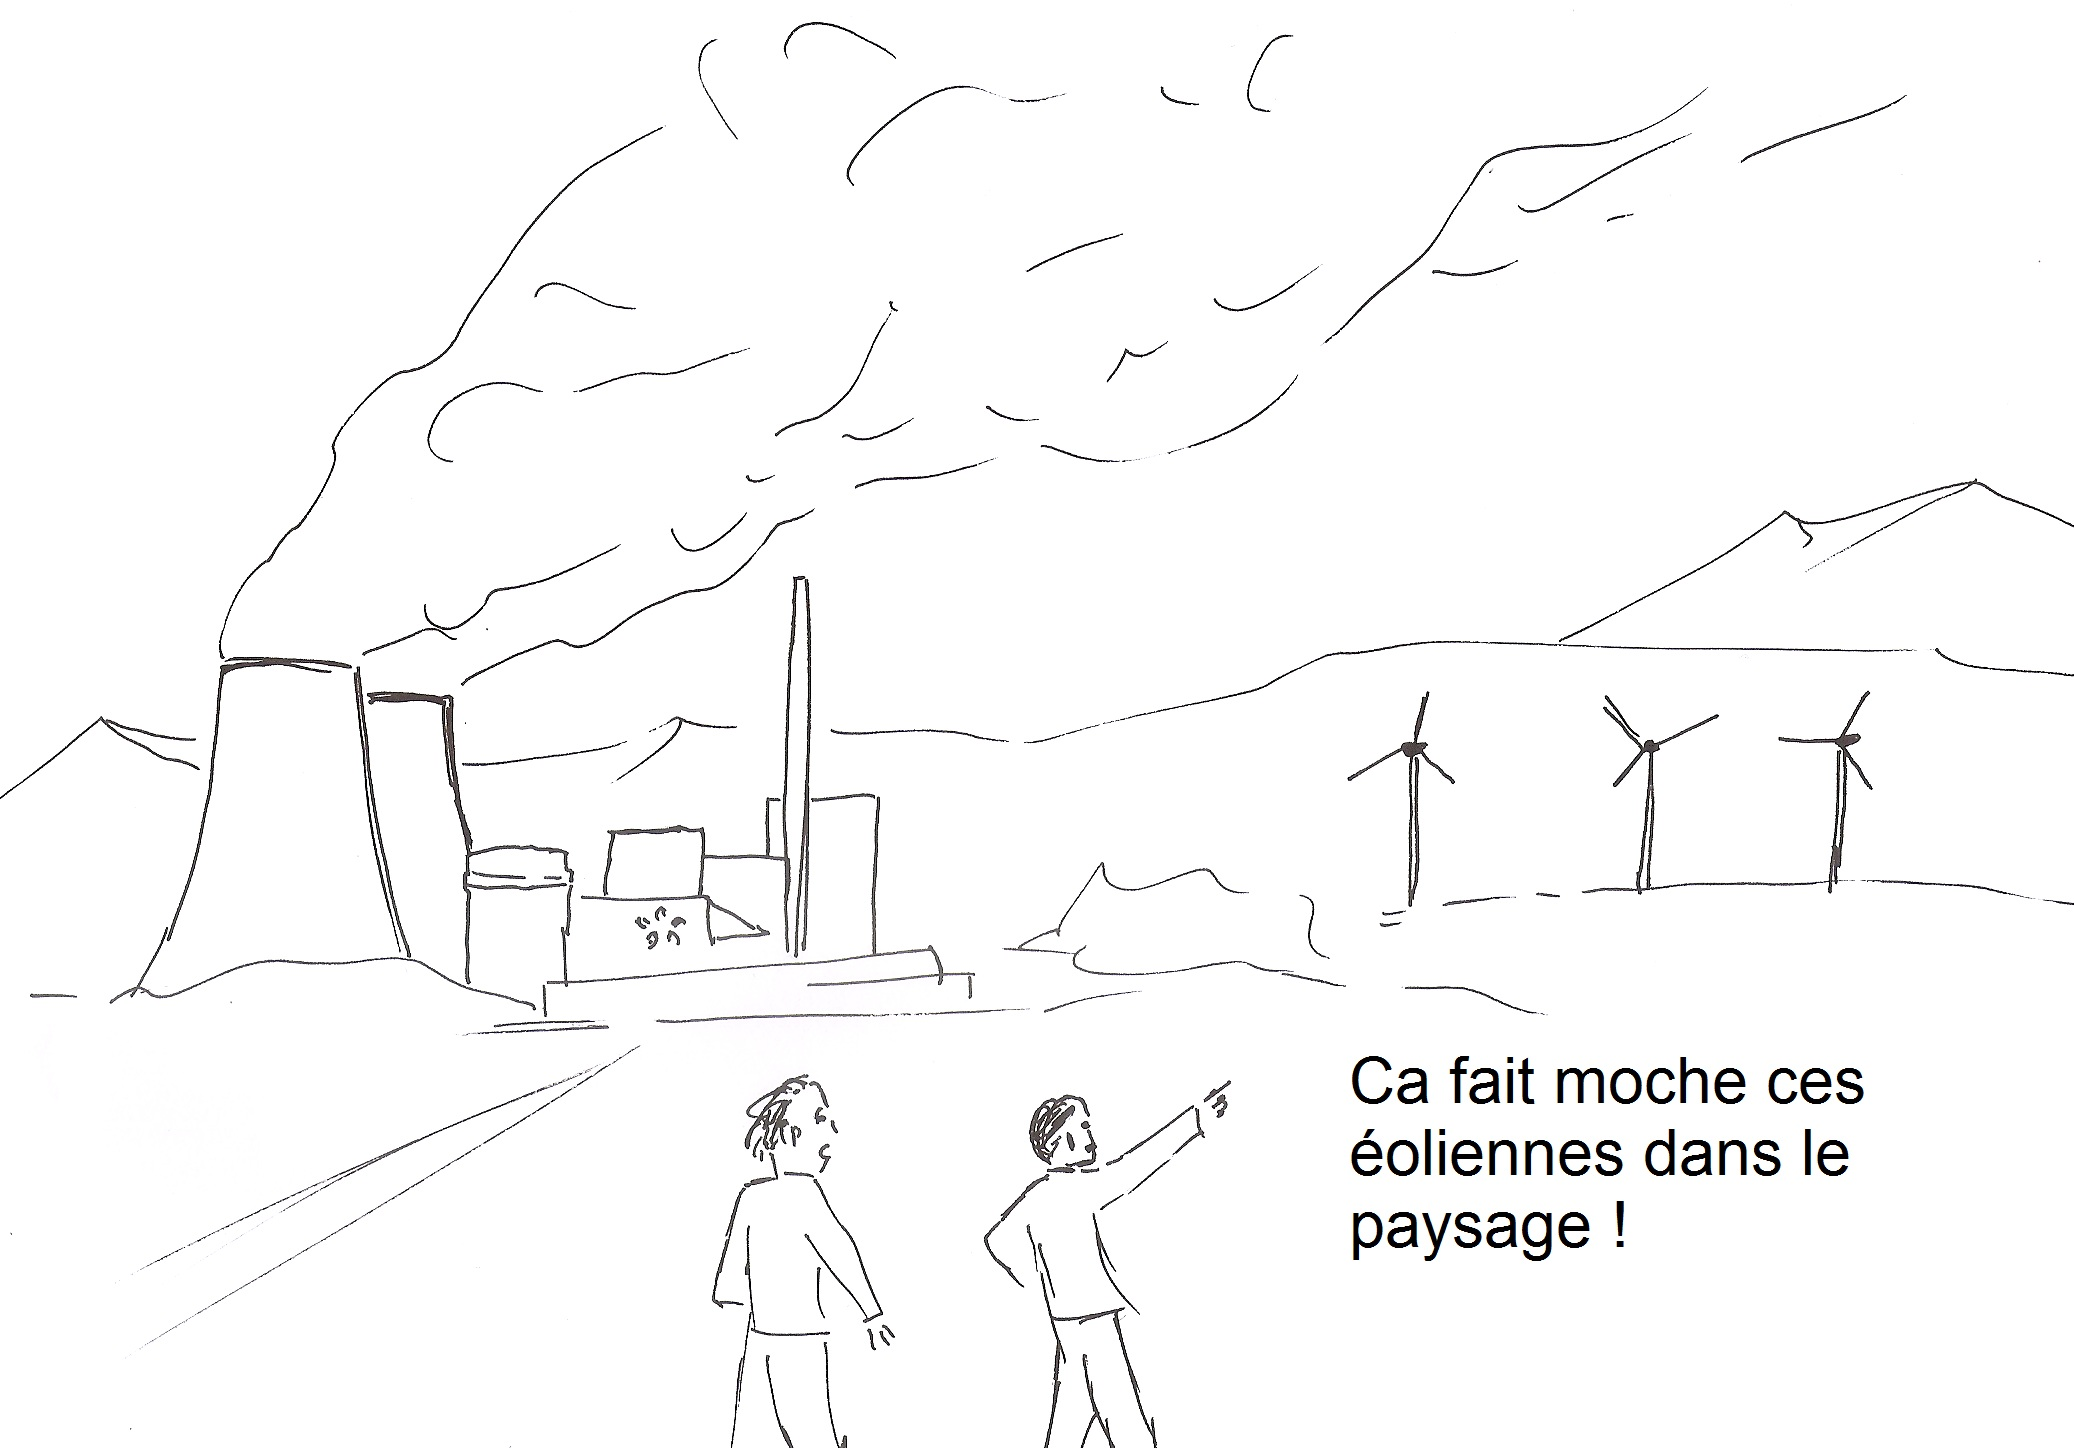 images/eoliennes.jpg